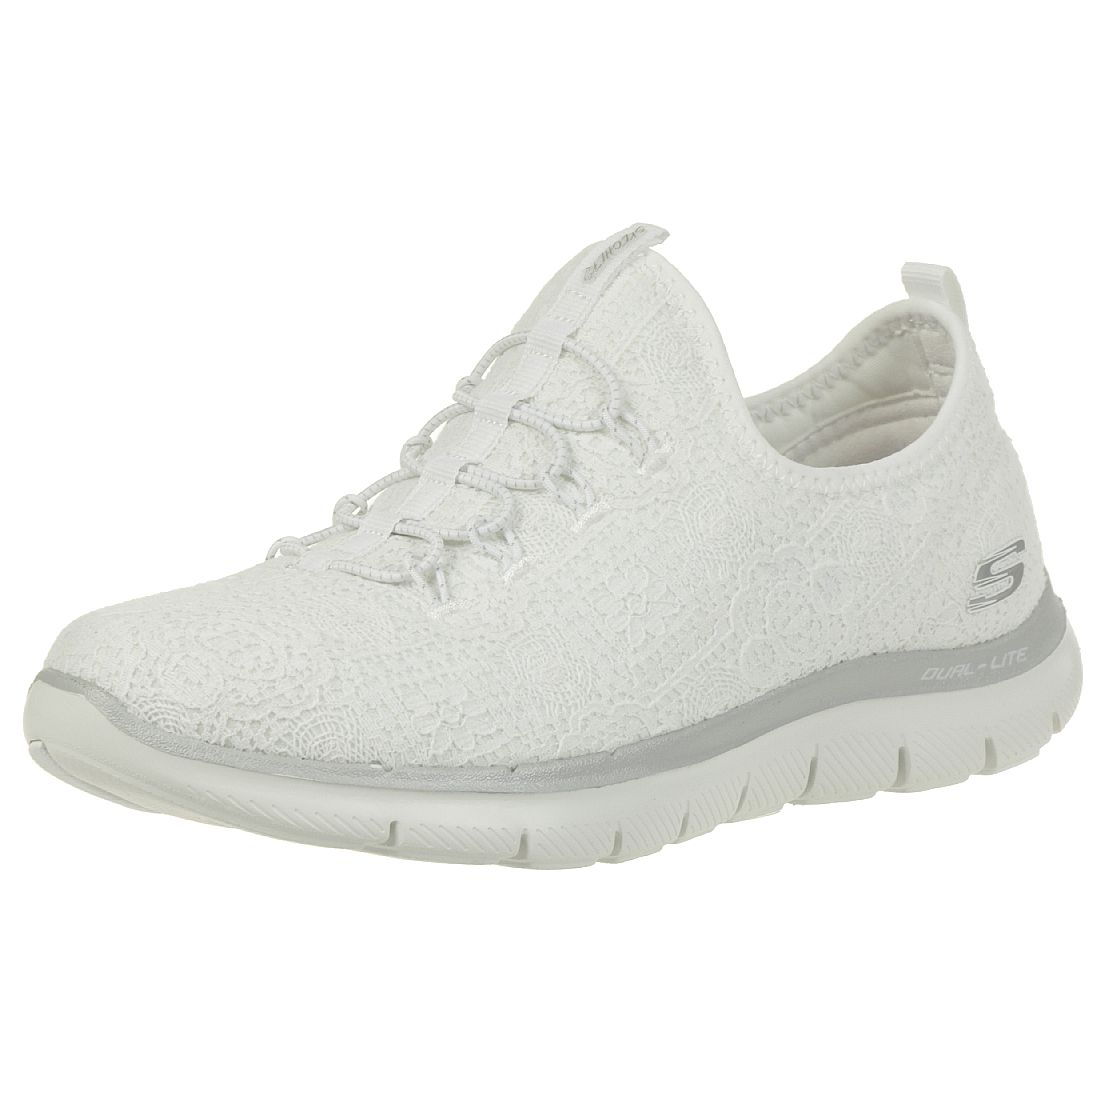 72f983b7976b8d Skechers Flex Appeal 2.0 CLEAR CUT Damen Sneaker Slip on Memory Foam weiss  silber 12907